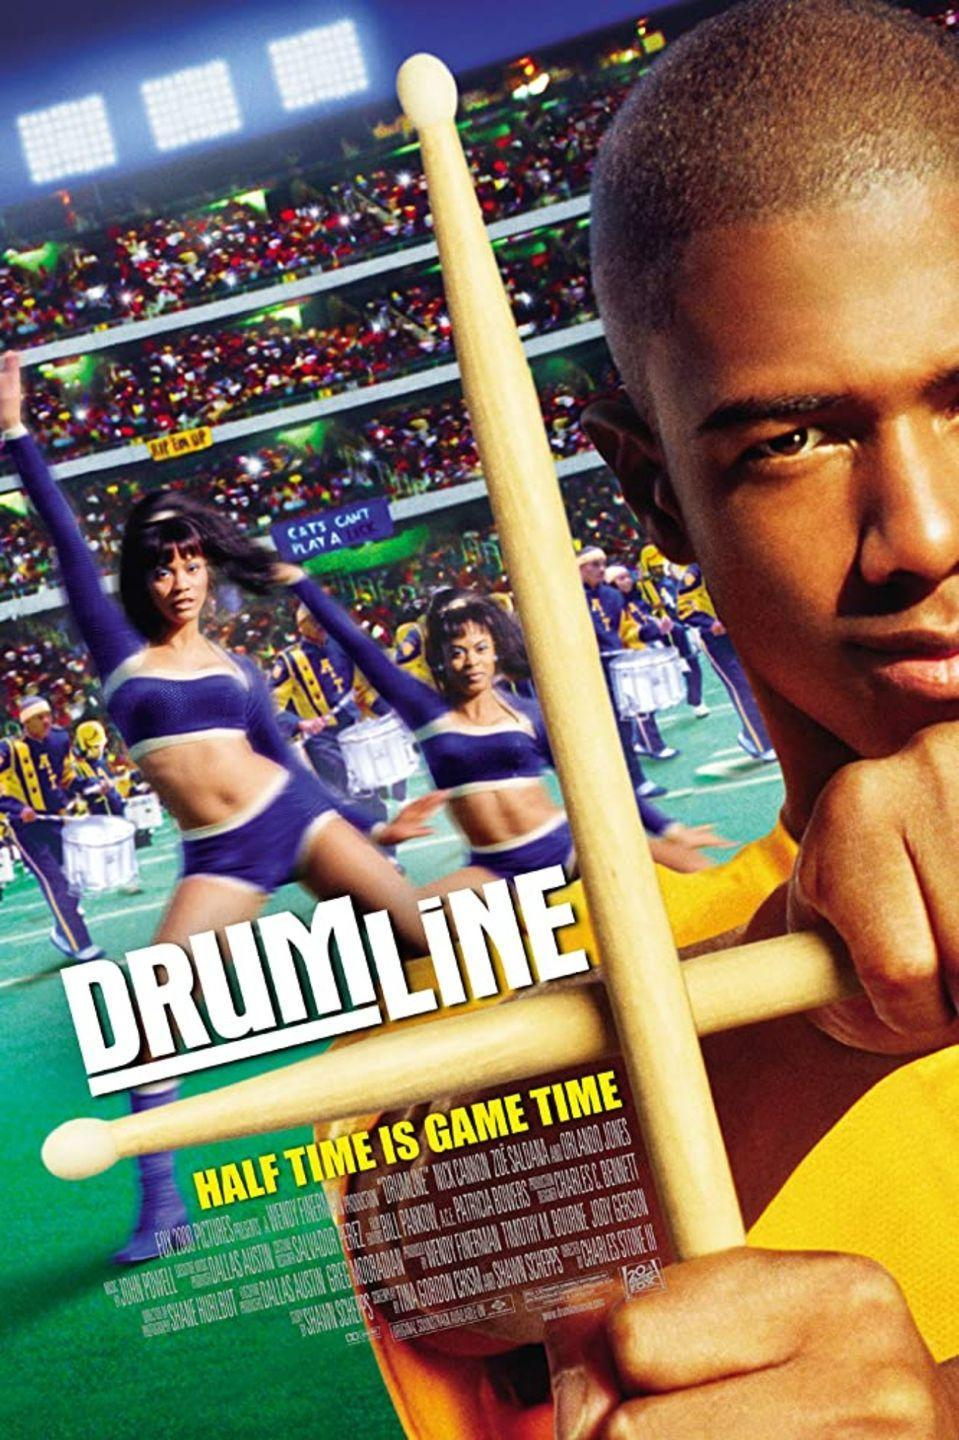 """<p>For a fascinating glimpse into the world of marching bands, look no further. A Harlem native street drummer (<strong>Nick Cannon</strong>) gets recruited to play in a marching band at a predominately black college. He's expected to lead the band, but he finds out that it takes more than talent to reach to the top.</p><p><a class=""""link rapid-noclick-resp"""" href=""""https://www.amazon.com/Drumline-Nick-Cannon/dp/B000I9X67M/ref=sr_1_2?dchild=1&keywords=DRUMLINE&qid=1596922881&sr=8-2&tag=syn-yahoo-20&ascsubtag=%5Bartid%7C10055.g.33513354%5Bsrc%7Cyahoo-us"""" rel=""""nofollow noopener"""" target=""""_blank"""" data-ylk=""""slk:WATCH NOW"""">WATCH NOW</a></p>"""